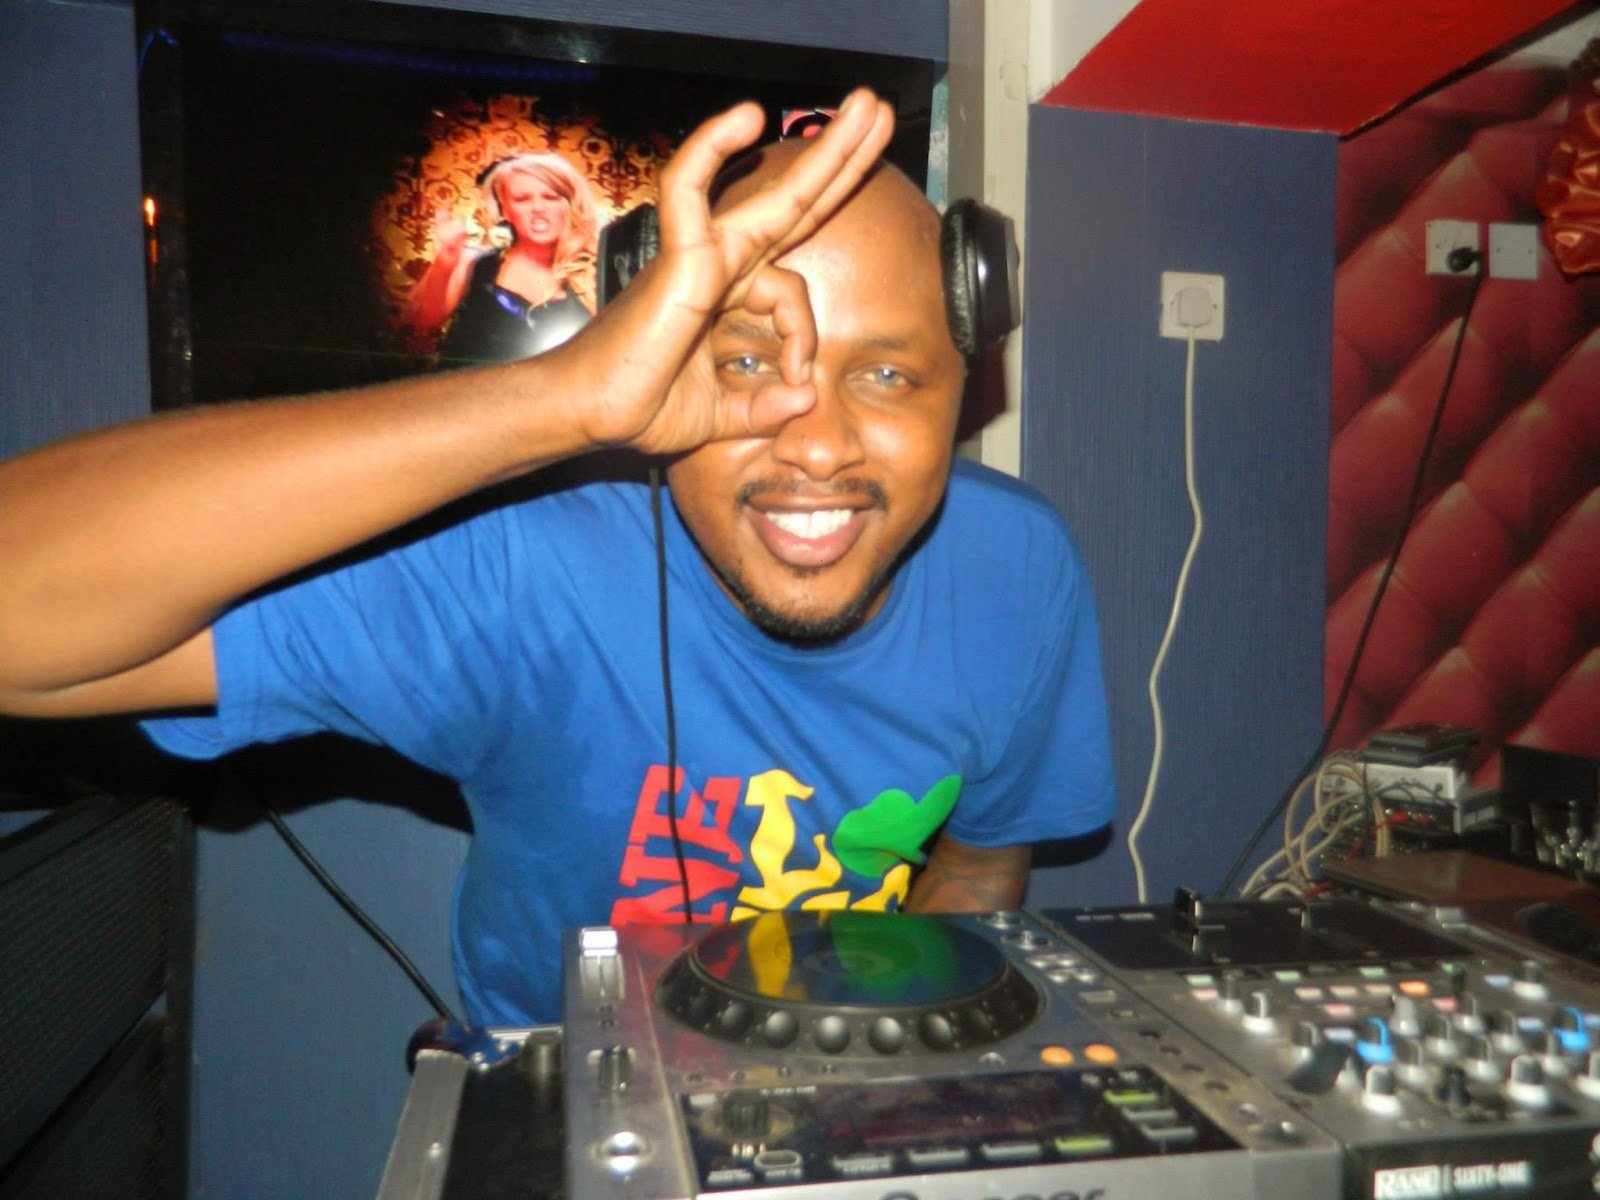 DJ Creme playing at a gig